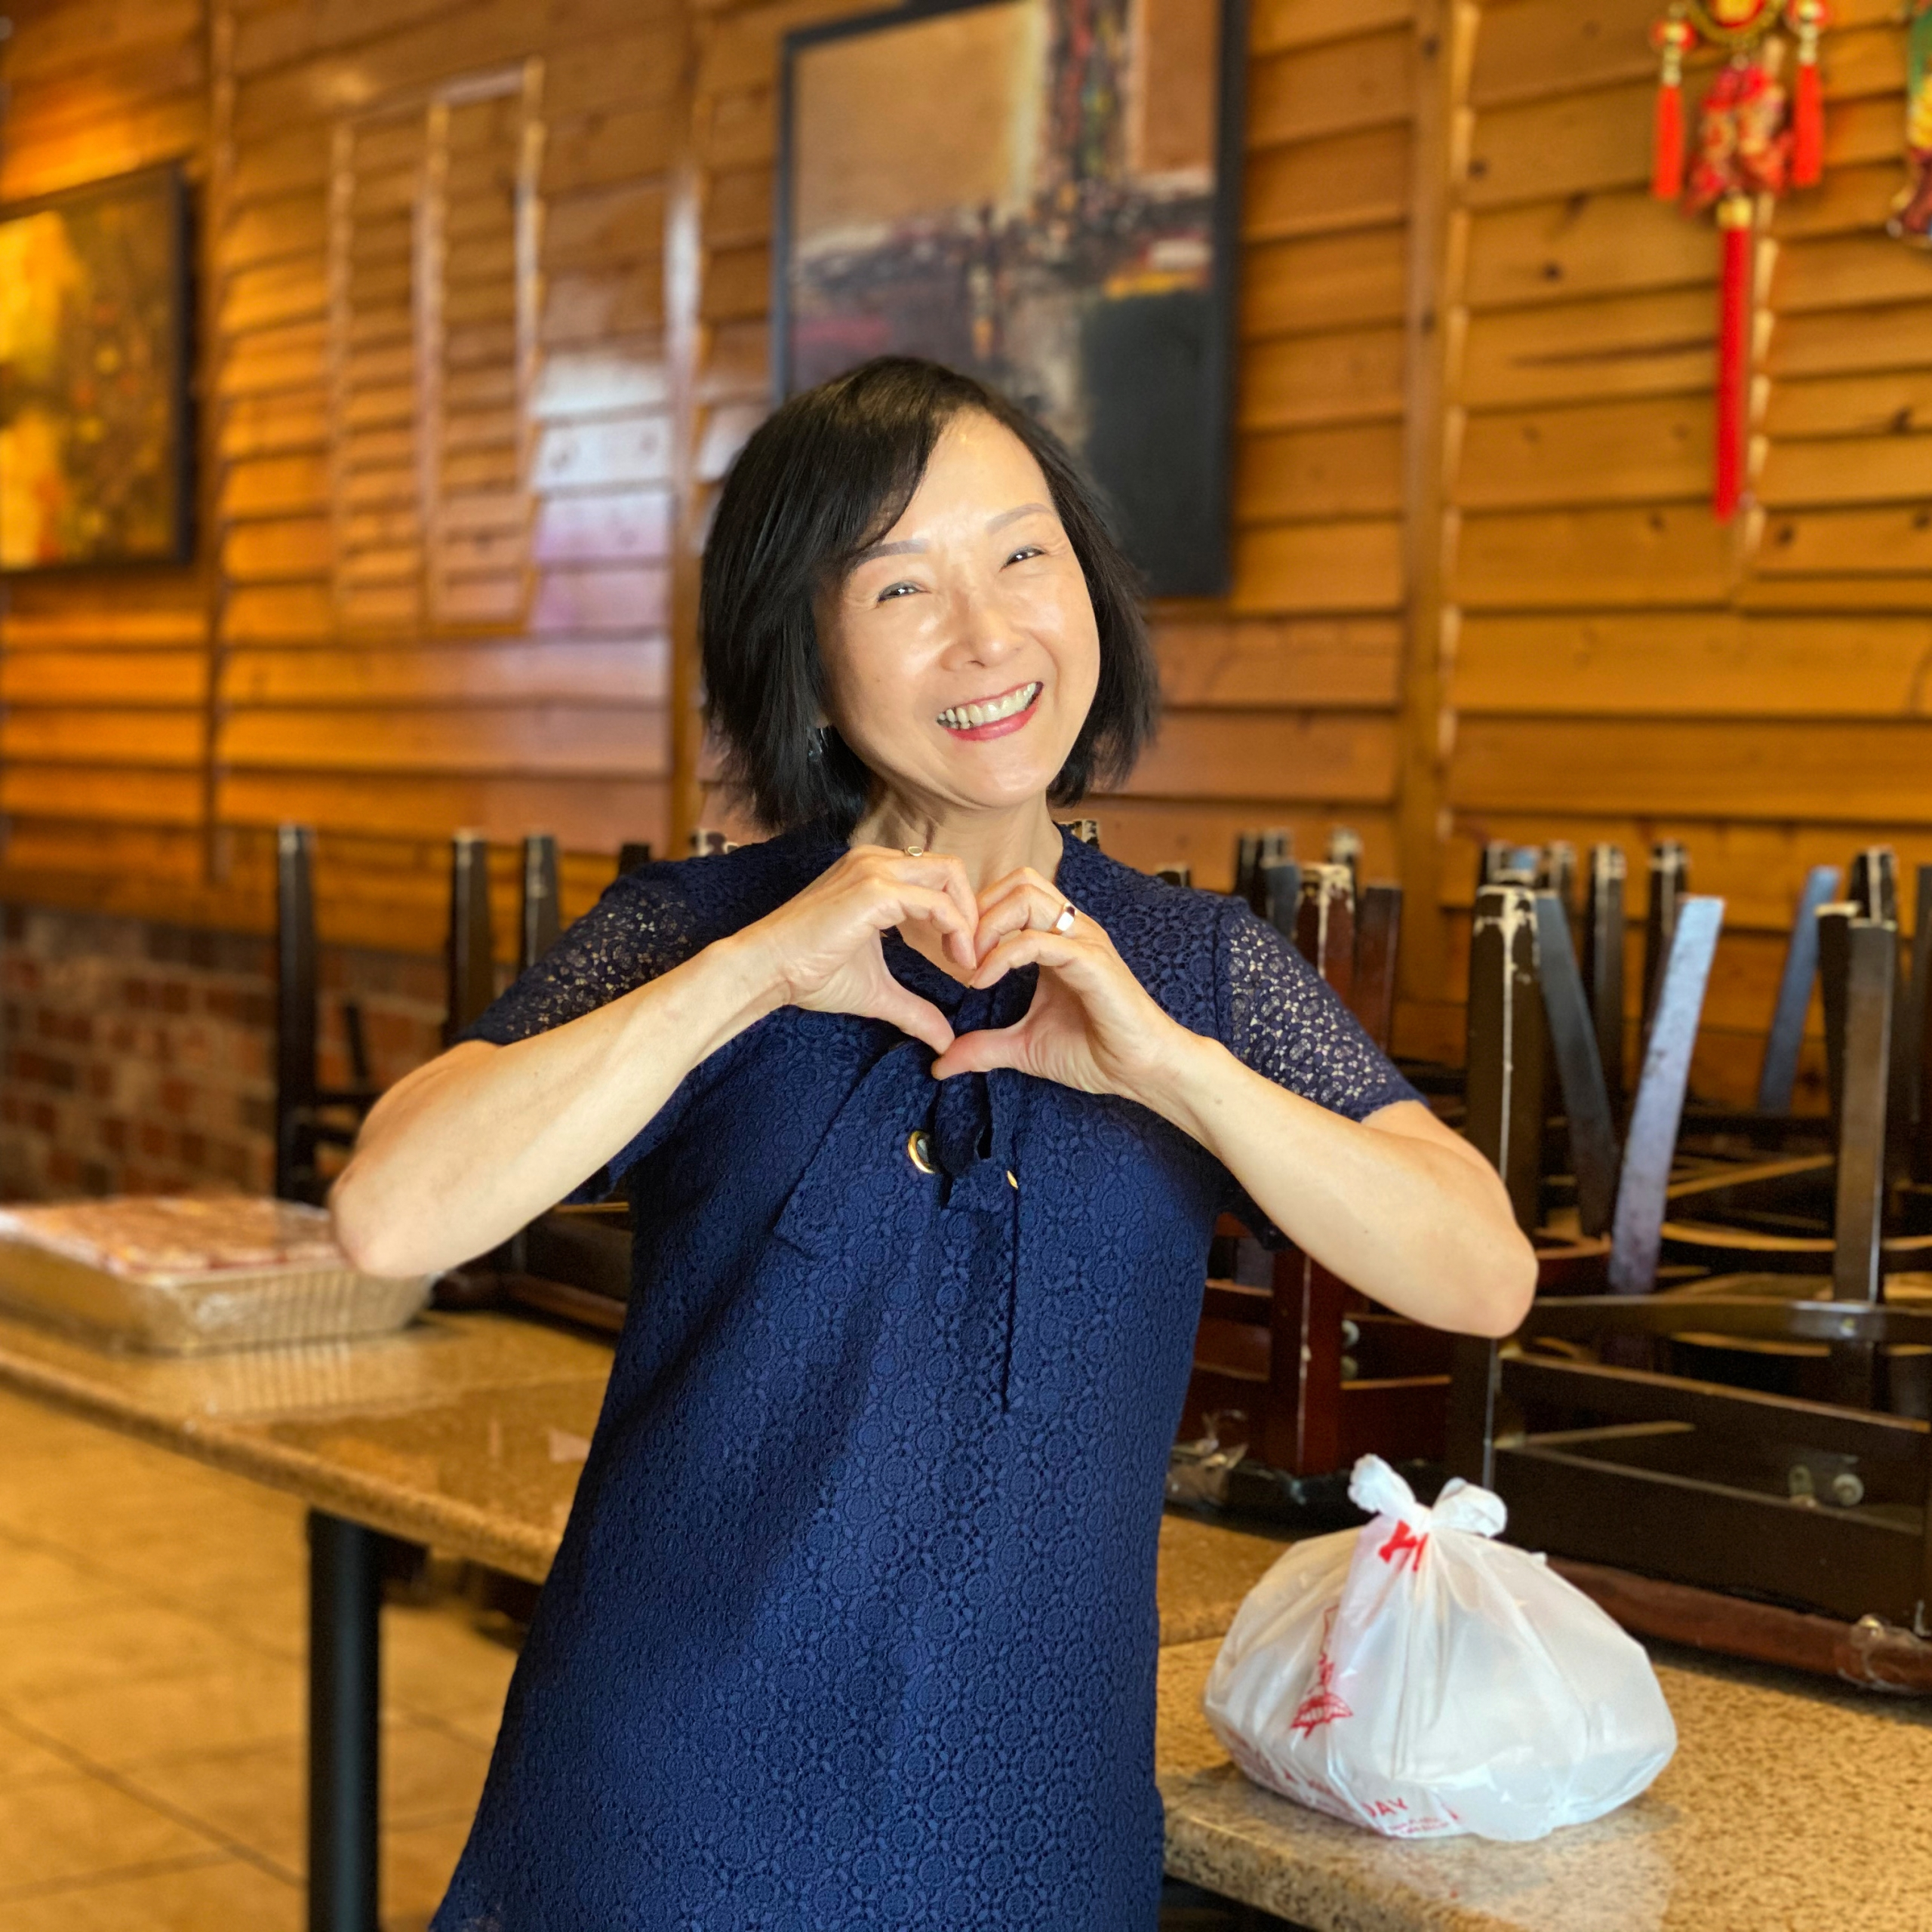 Co-owner Trinh Ong makes a heart shape with her hands, standing next to a takeout order in her restaurant.